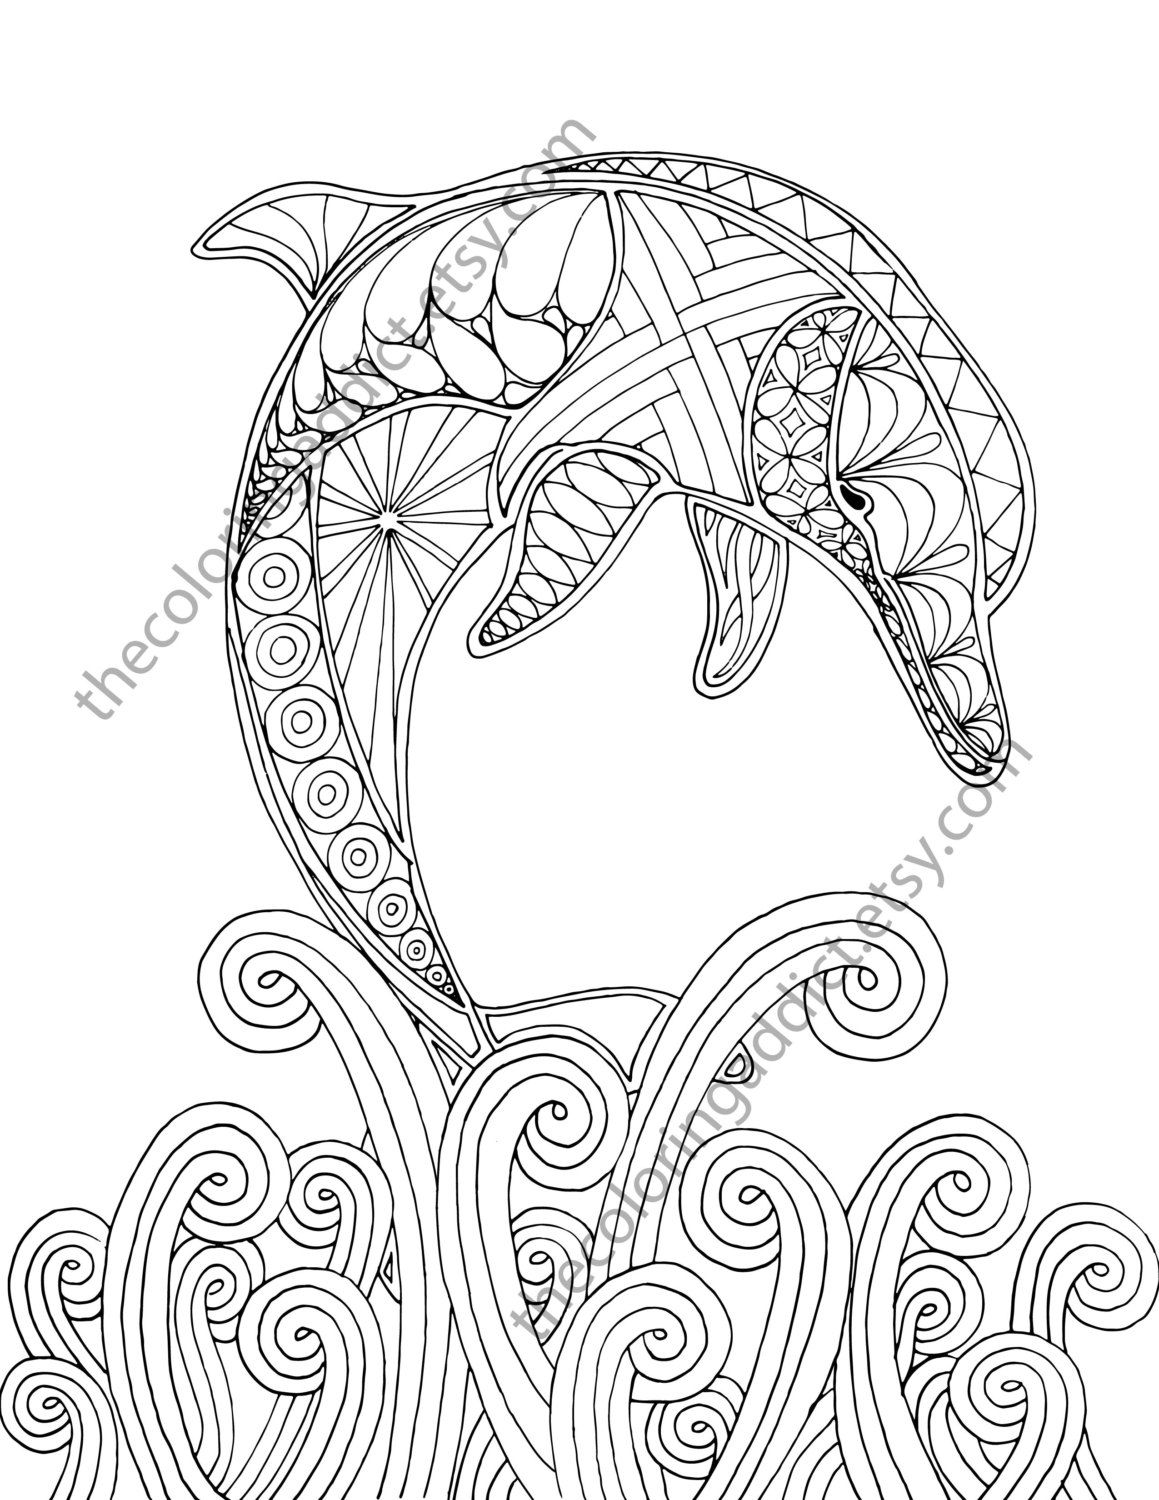 1159x1500 Dolphin Coloring Page, Adult Coloring Sheet, Nautical Coloring